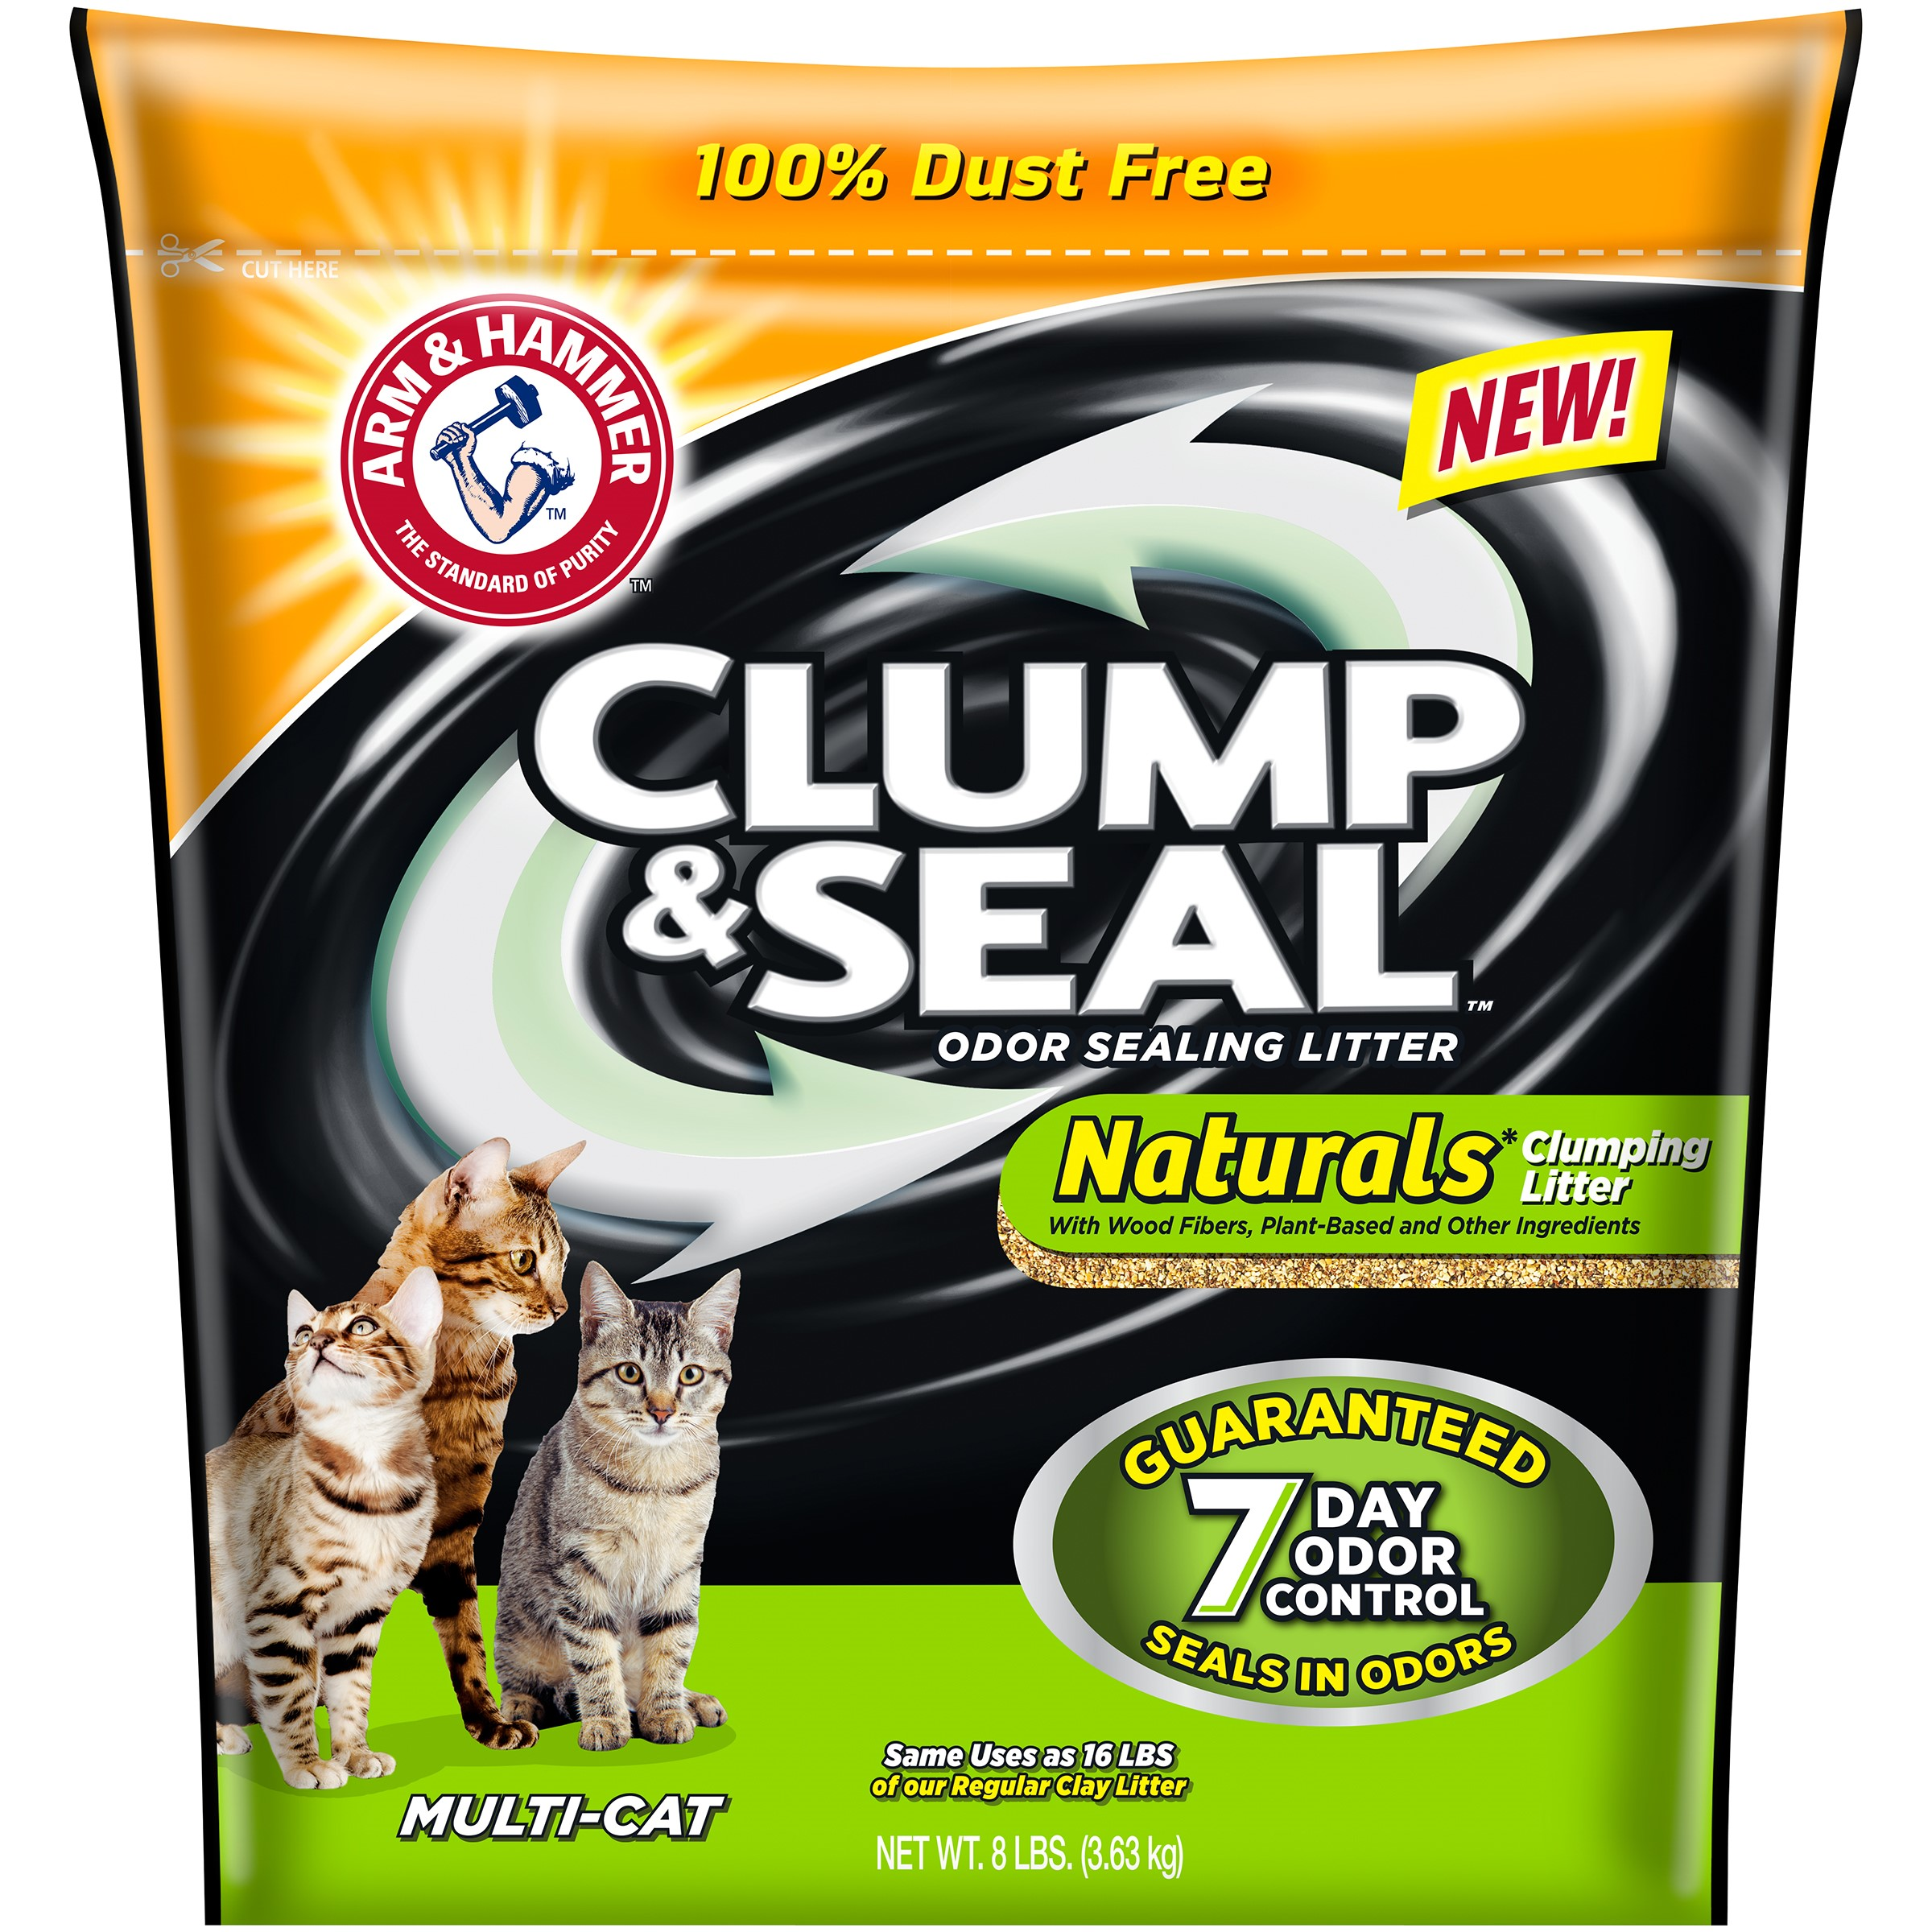 Arm & Hammer Clump & Seal Naturals Clumping Cat Litter, 8-lb